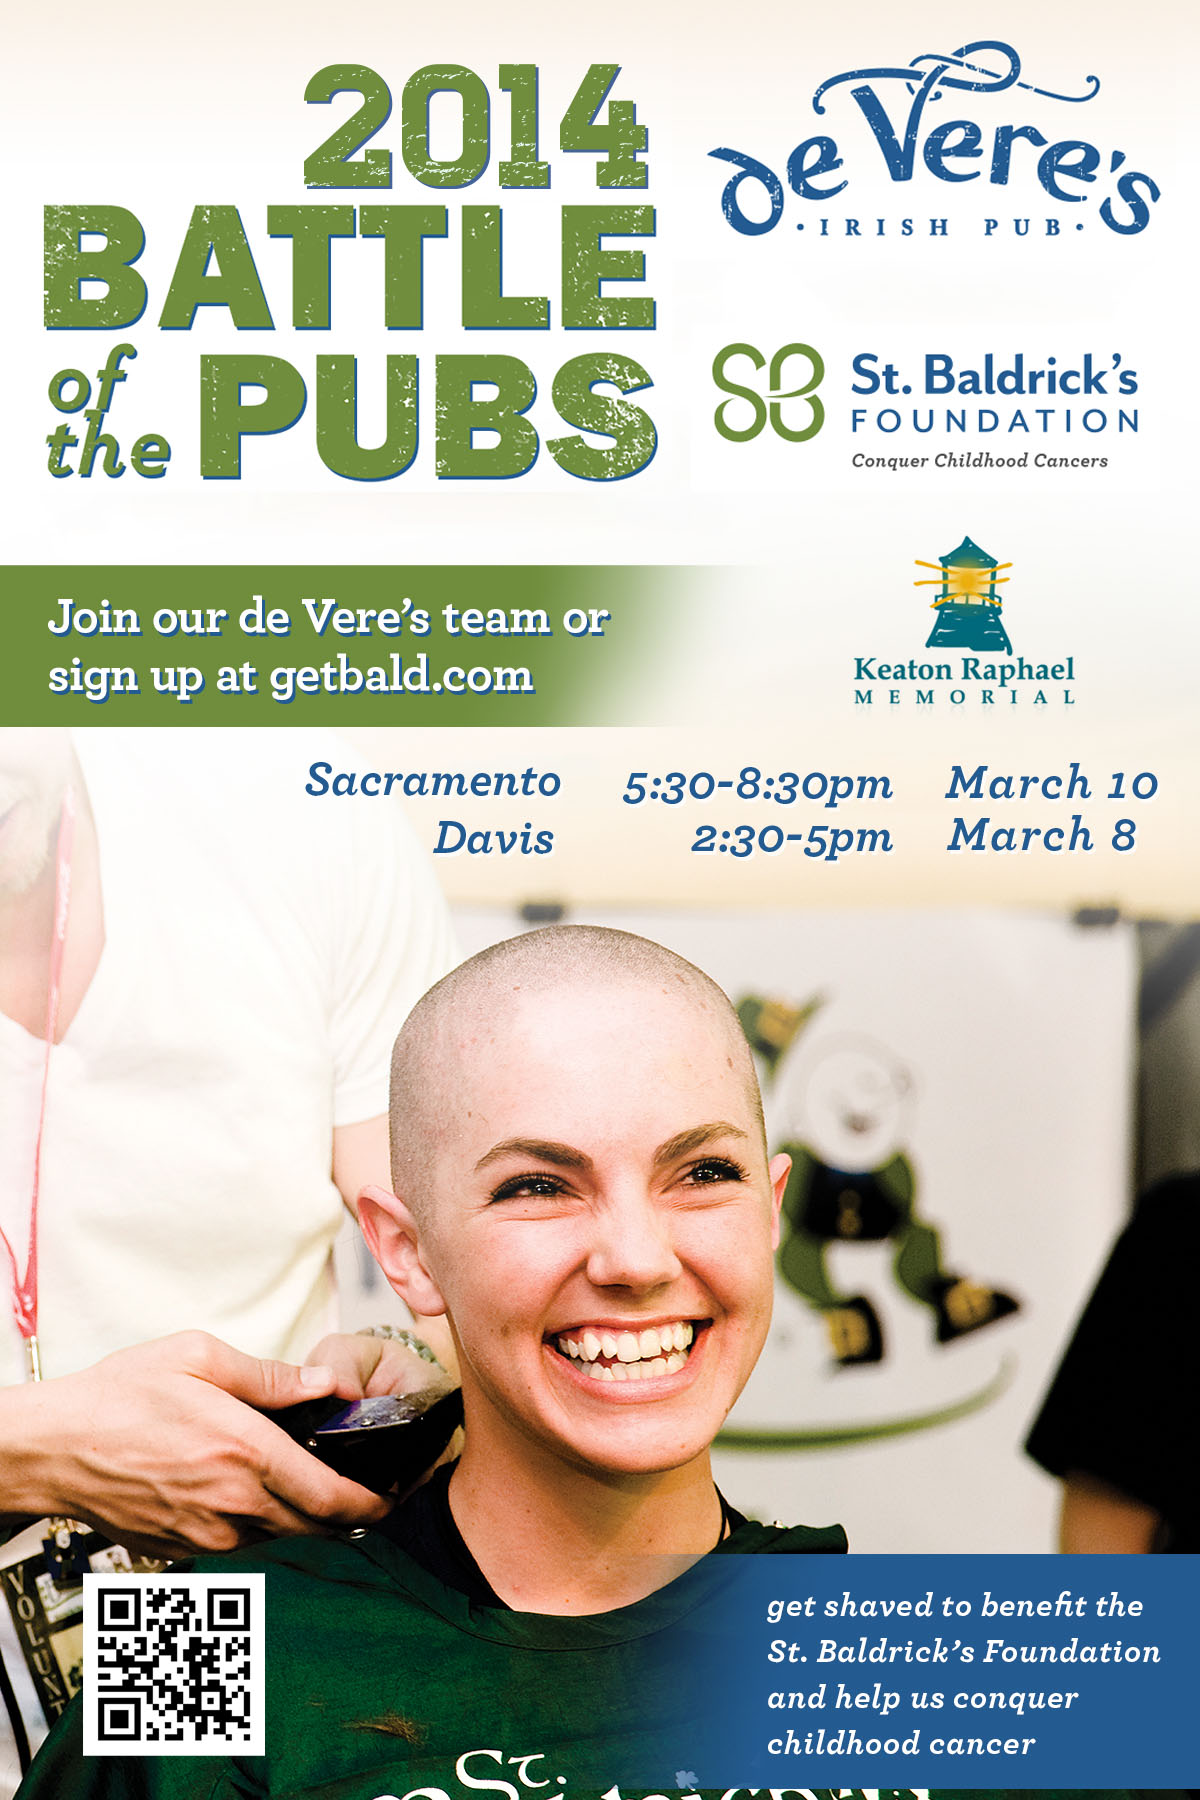 deveres.stbaldricks.4x6-2014